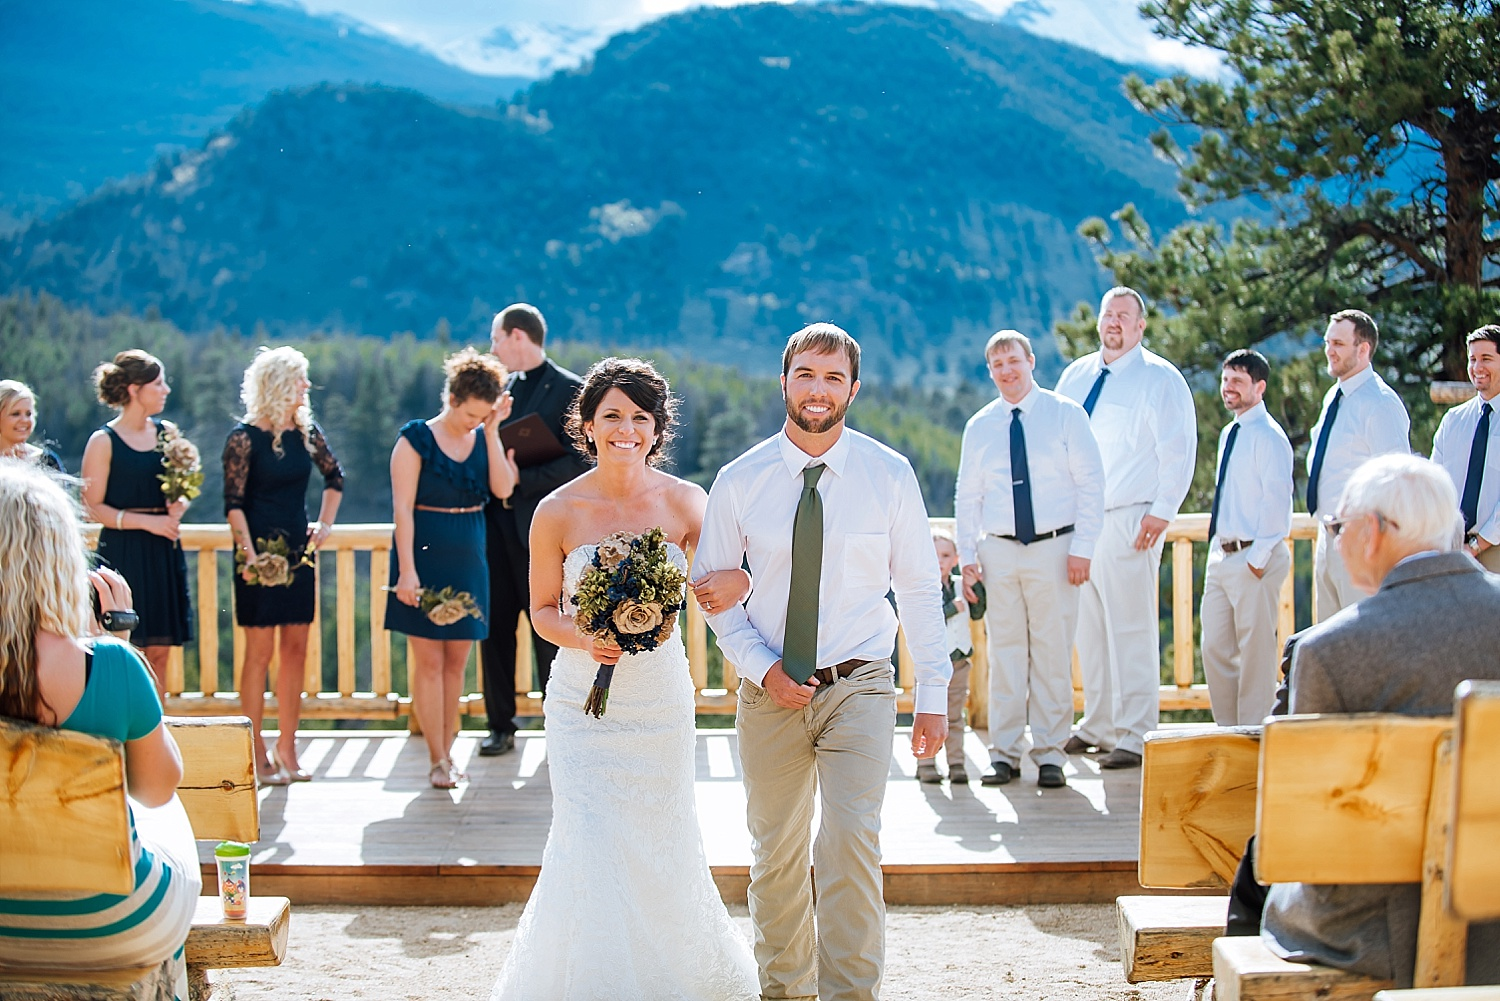 Overlook Chapel in Estes Park, Colorado is the perfect wedding venue. I love Rocky Mountain National Park and mountain weddings. Photo by Maddie Mae Photography